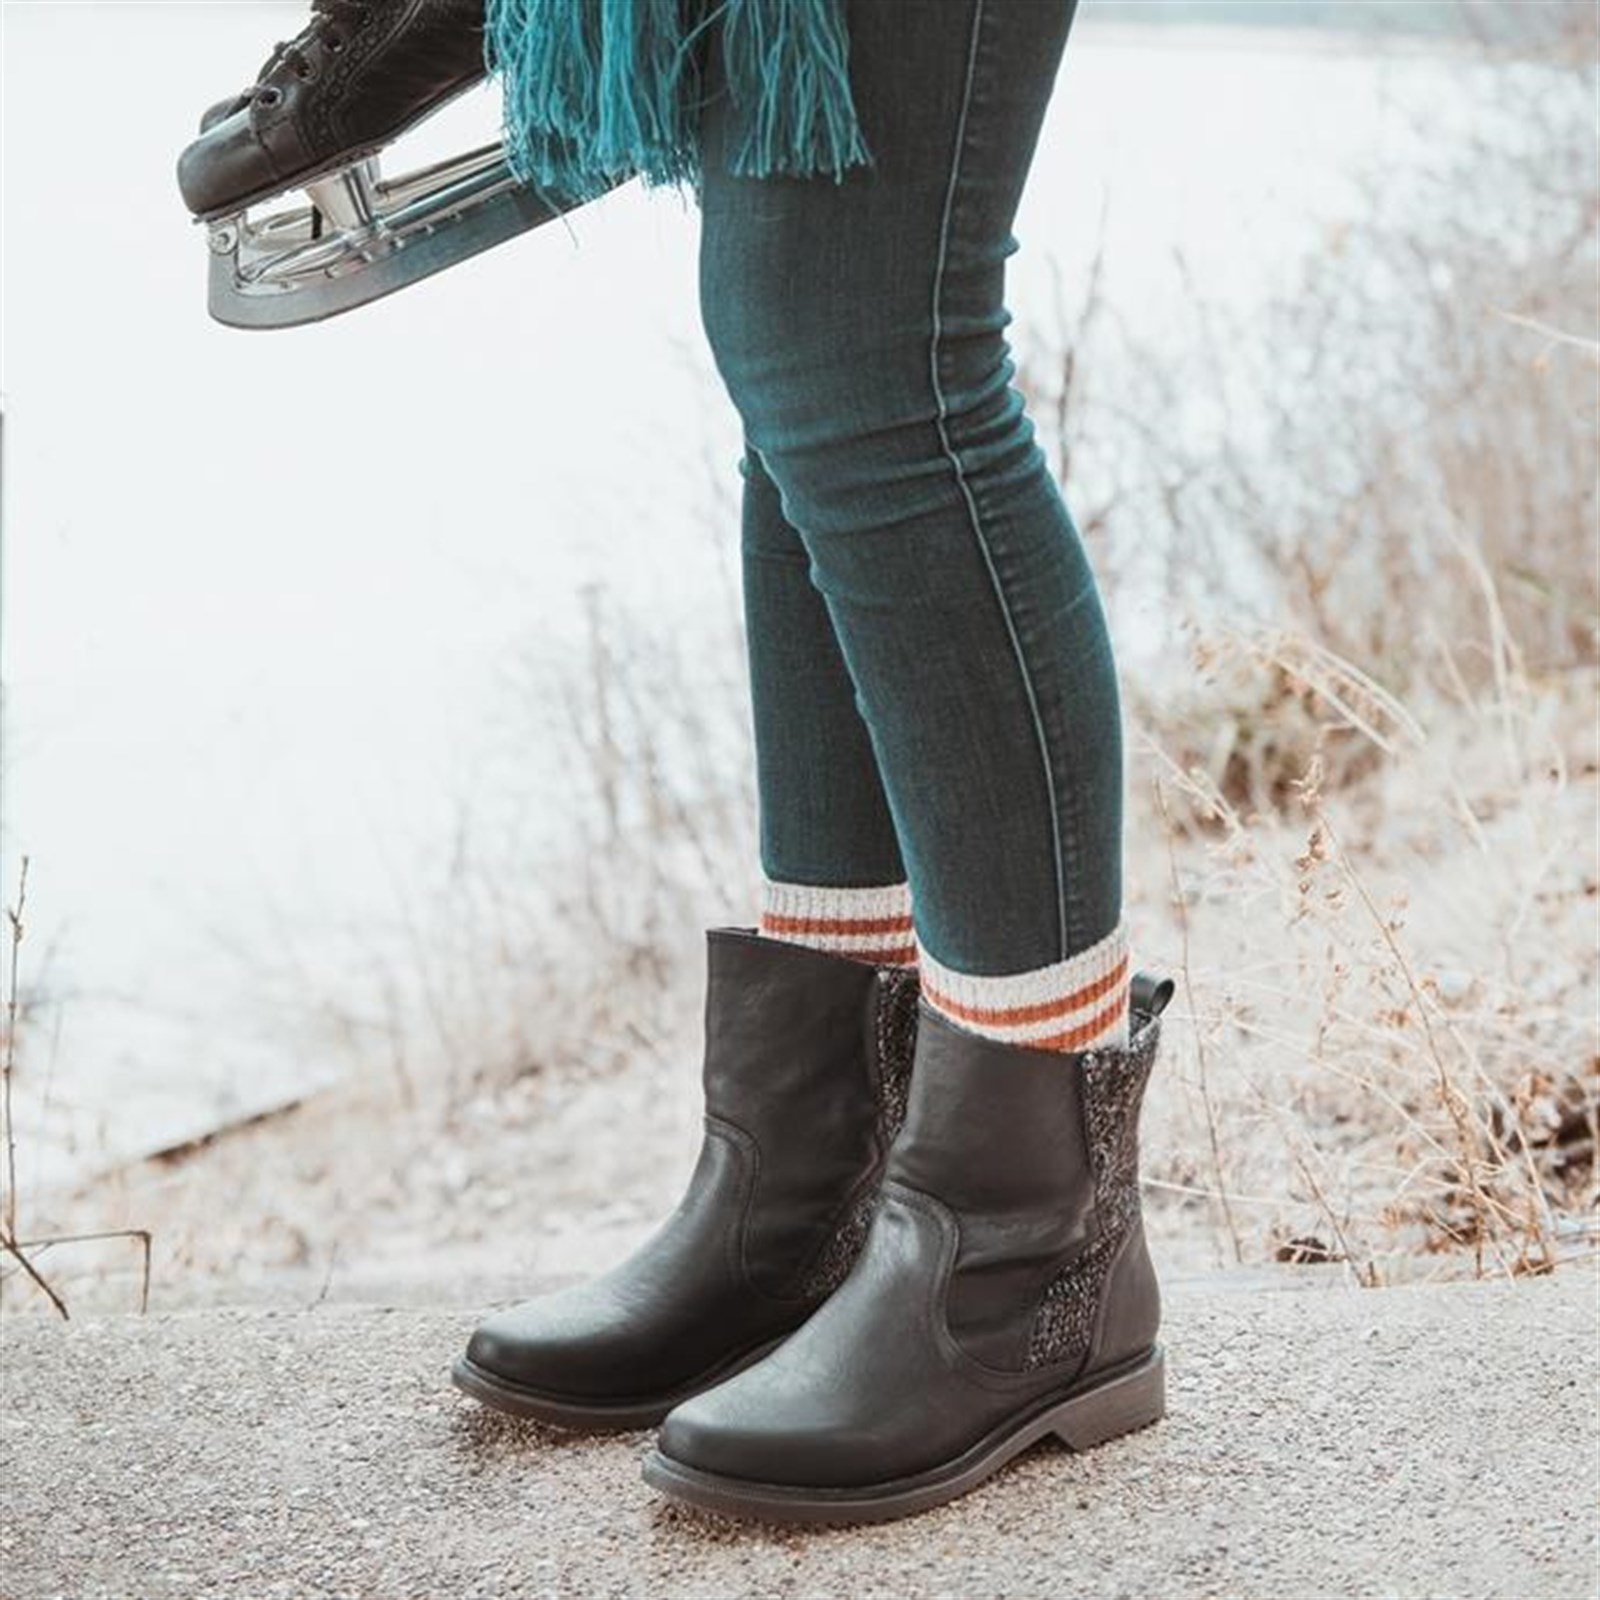 MUK LUKS Women's Karlie Boots Only $29.99 w/ Free Shipping